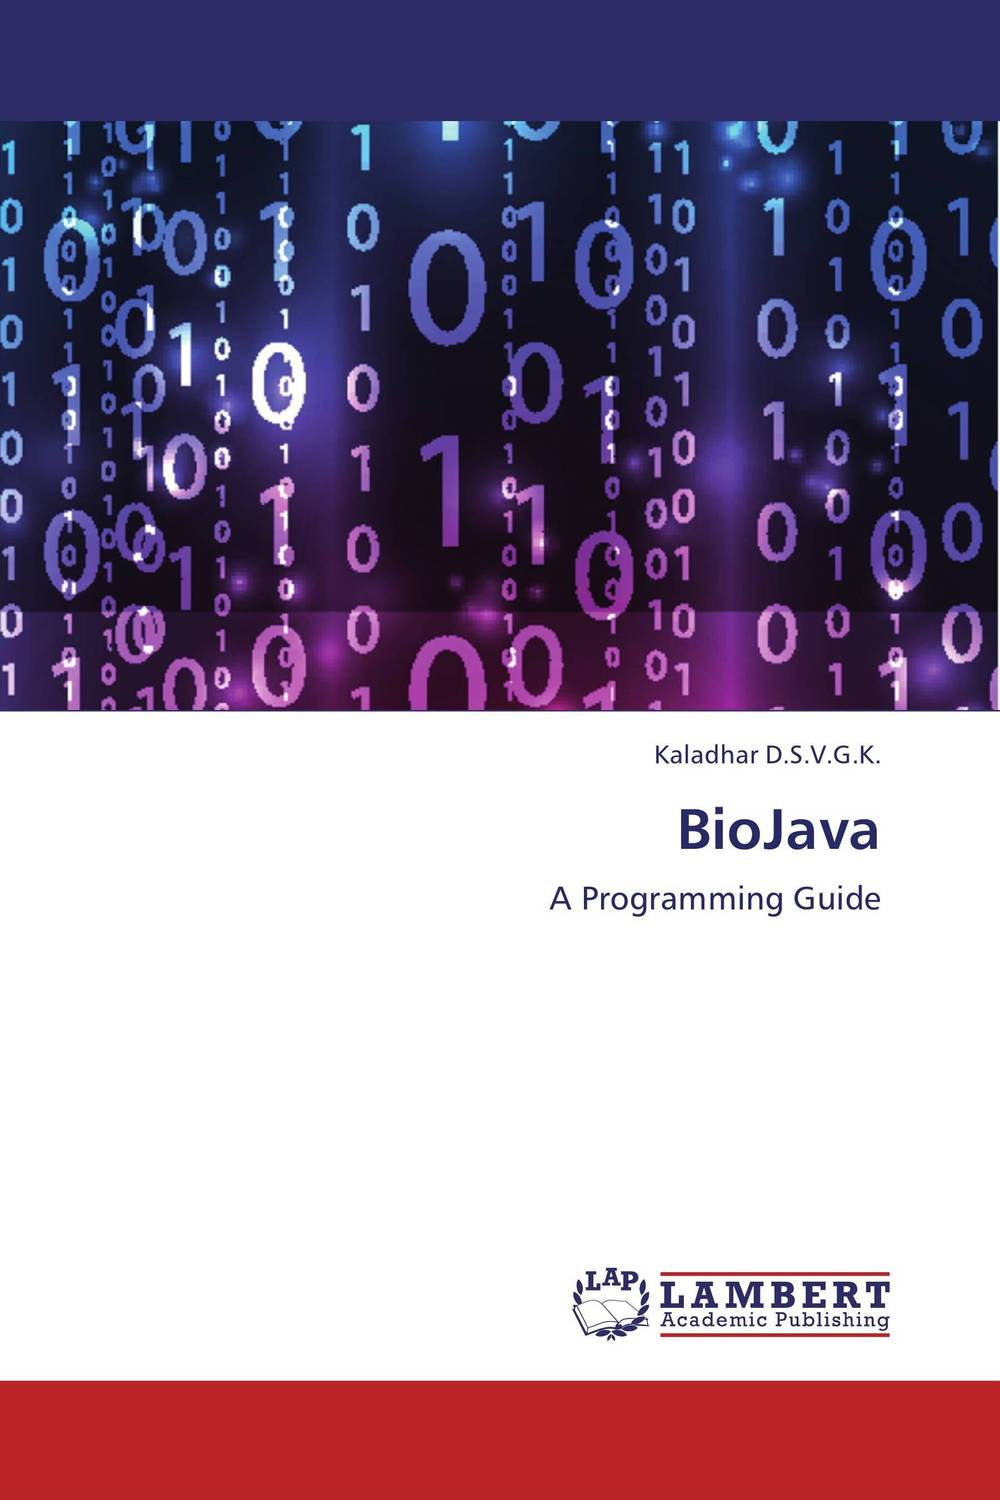 BioJava berry programming language translation